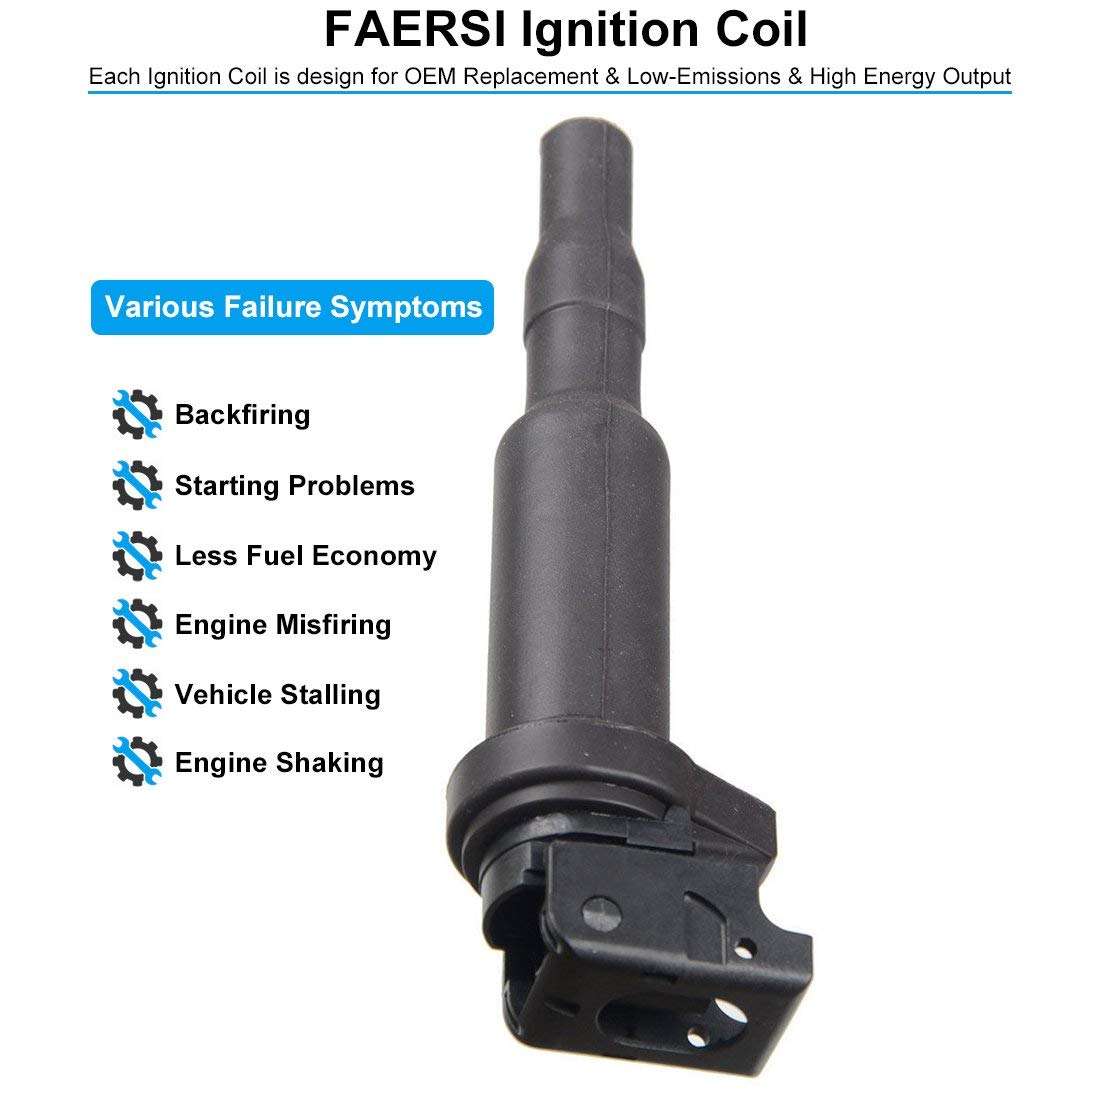 FAERSI Ignition Coil Pack of 1 Replaces OE# 0221504470 for BMW 325i 325Ci  328i 330Ci 335i 525i 528i 530i 535i 545i 745Li X3 X5 M5 M6 Z4 & More - 2 Yr